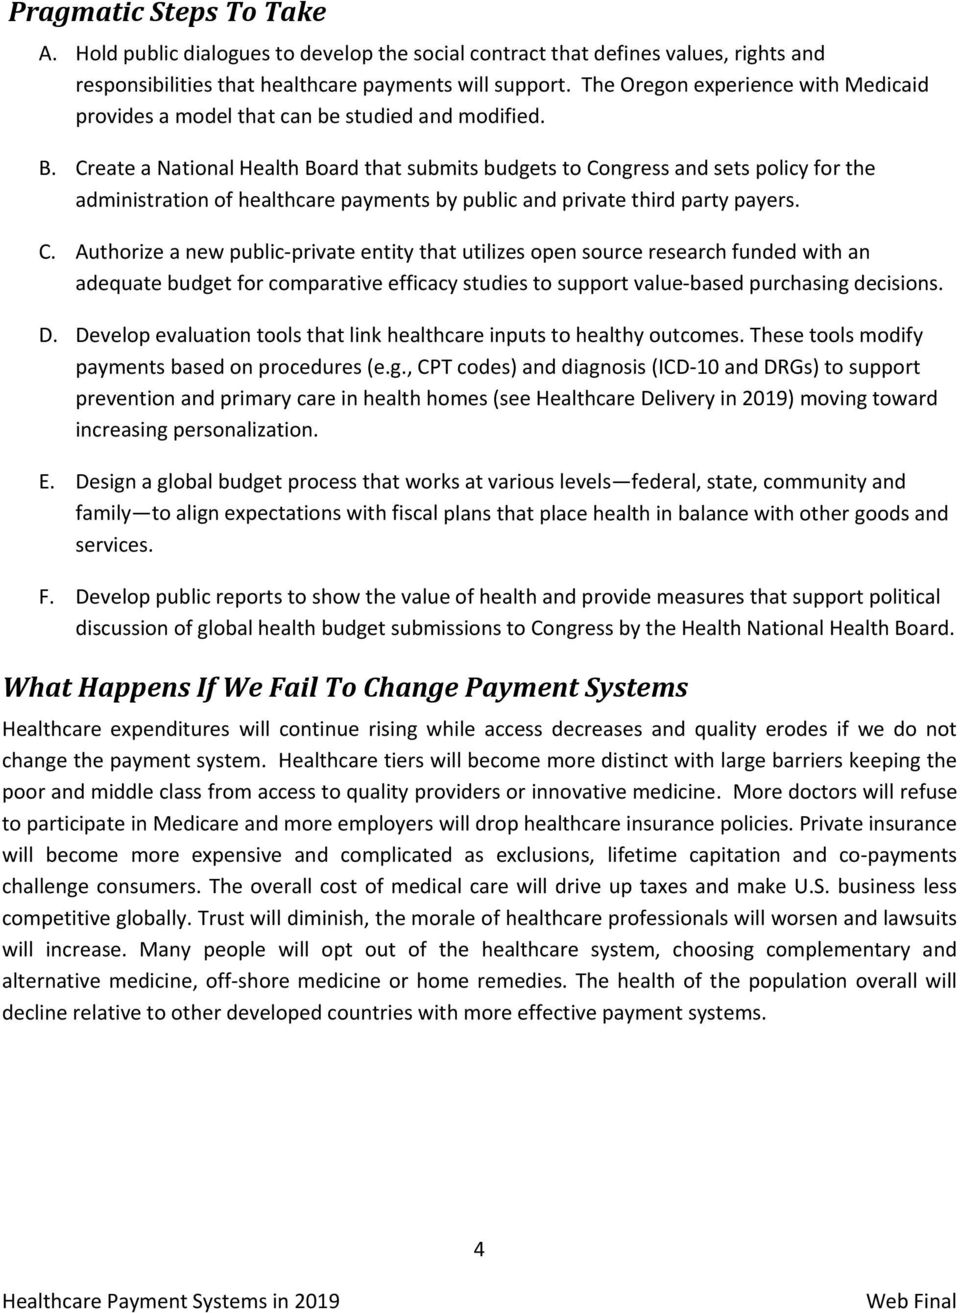 third party payment system healthcare